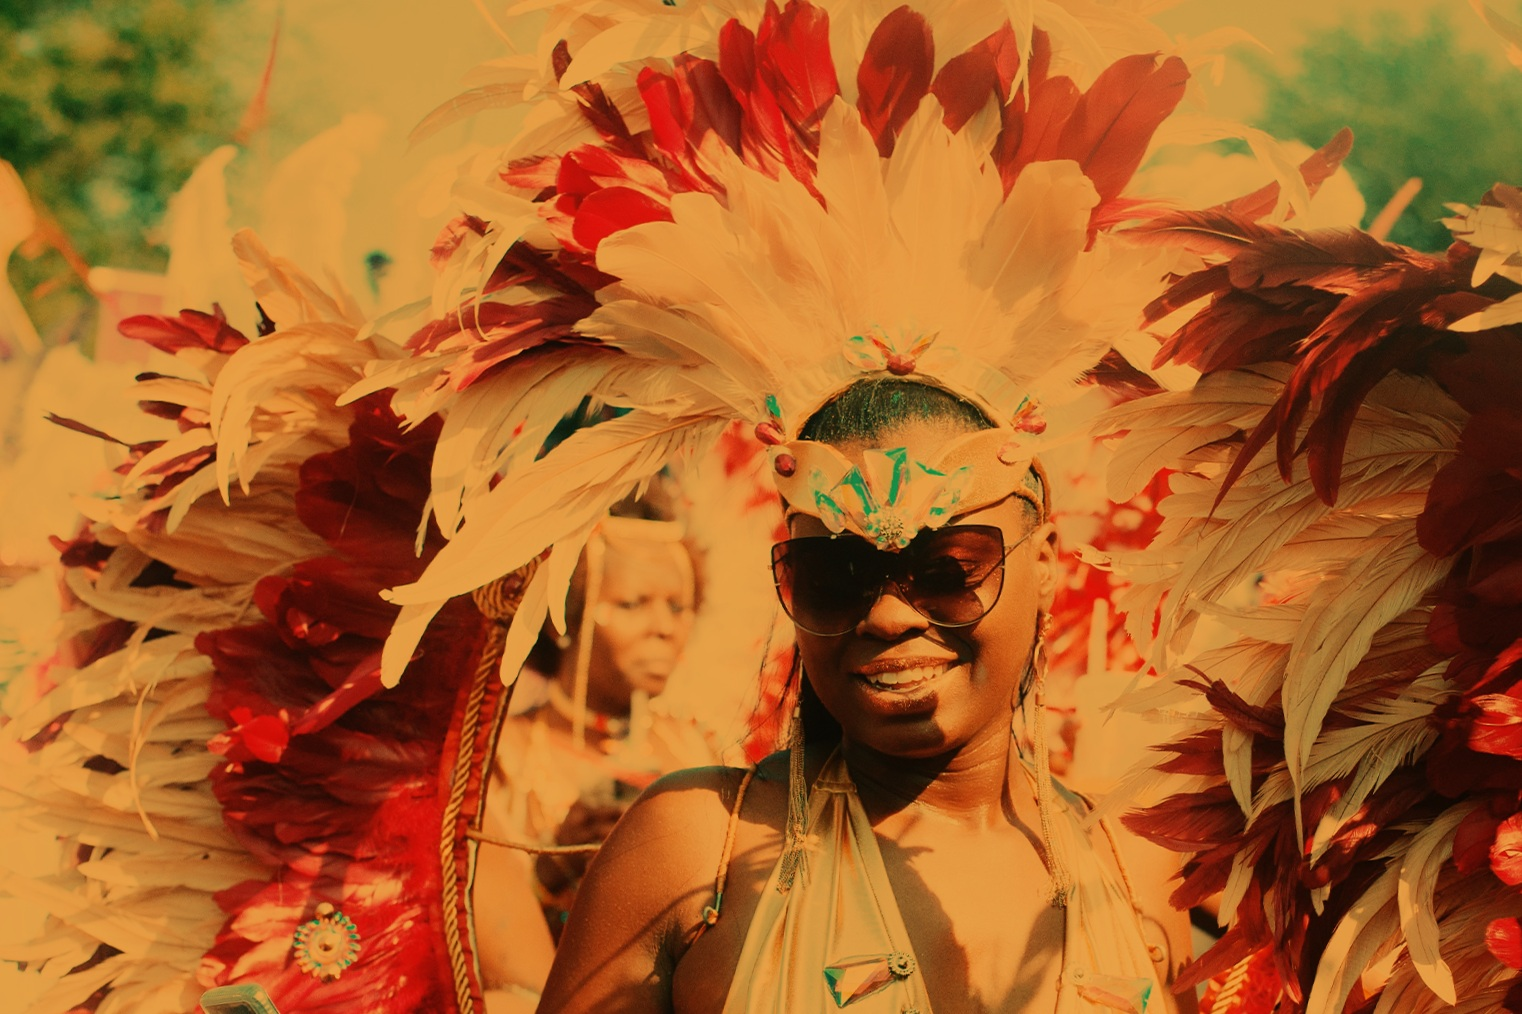 2019 CARNIVAL FETE LIST - VERY CULTURE! x LUCY AND VAGABOND 2019 FETE LIST